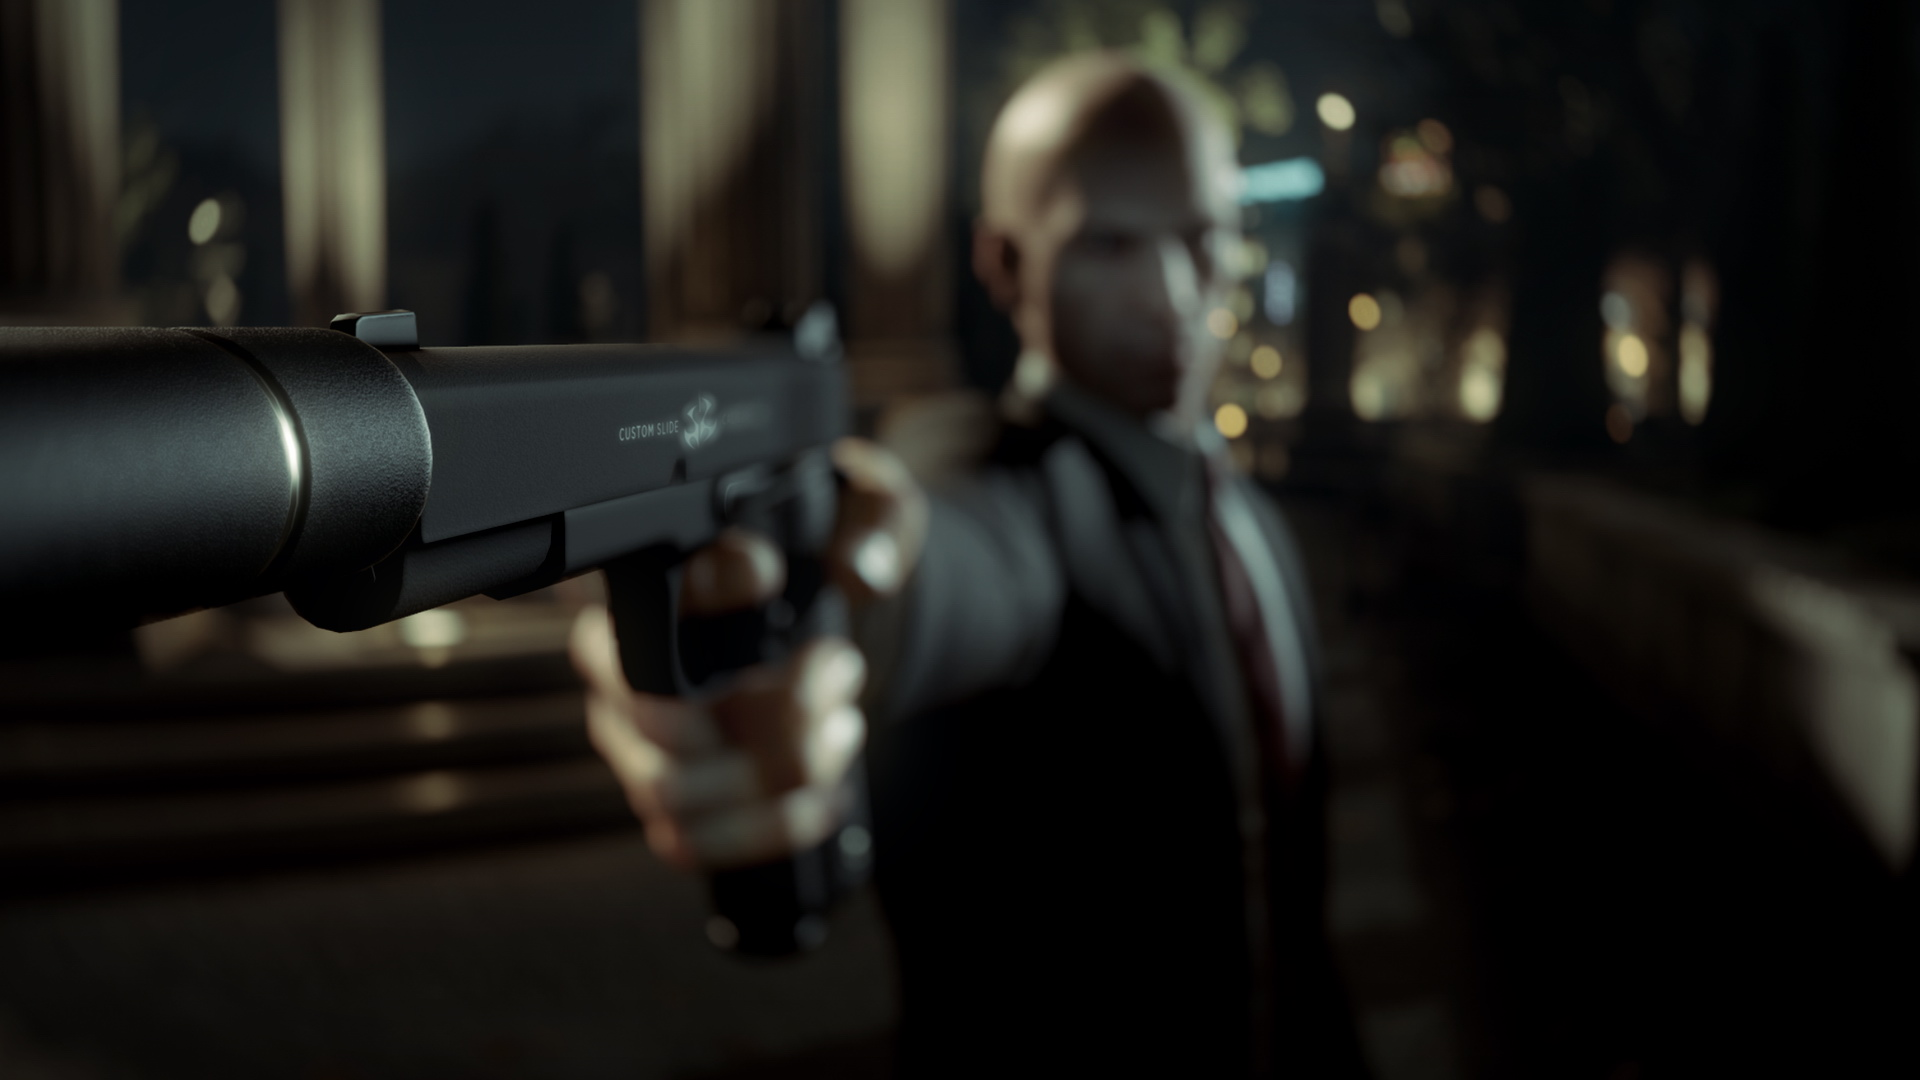 HITMAN-screen-online_3_1434645425